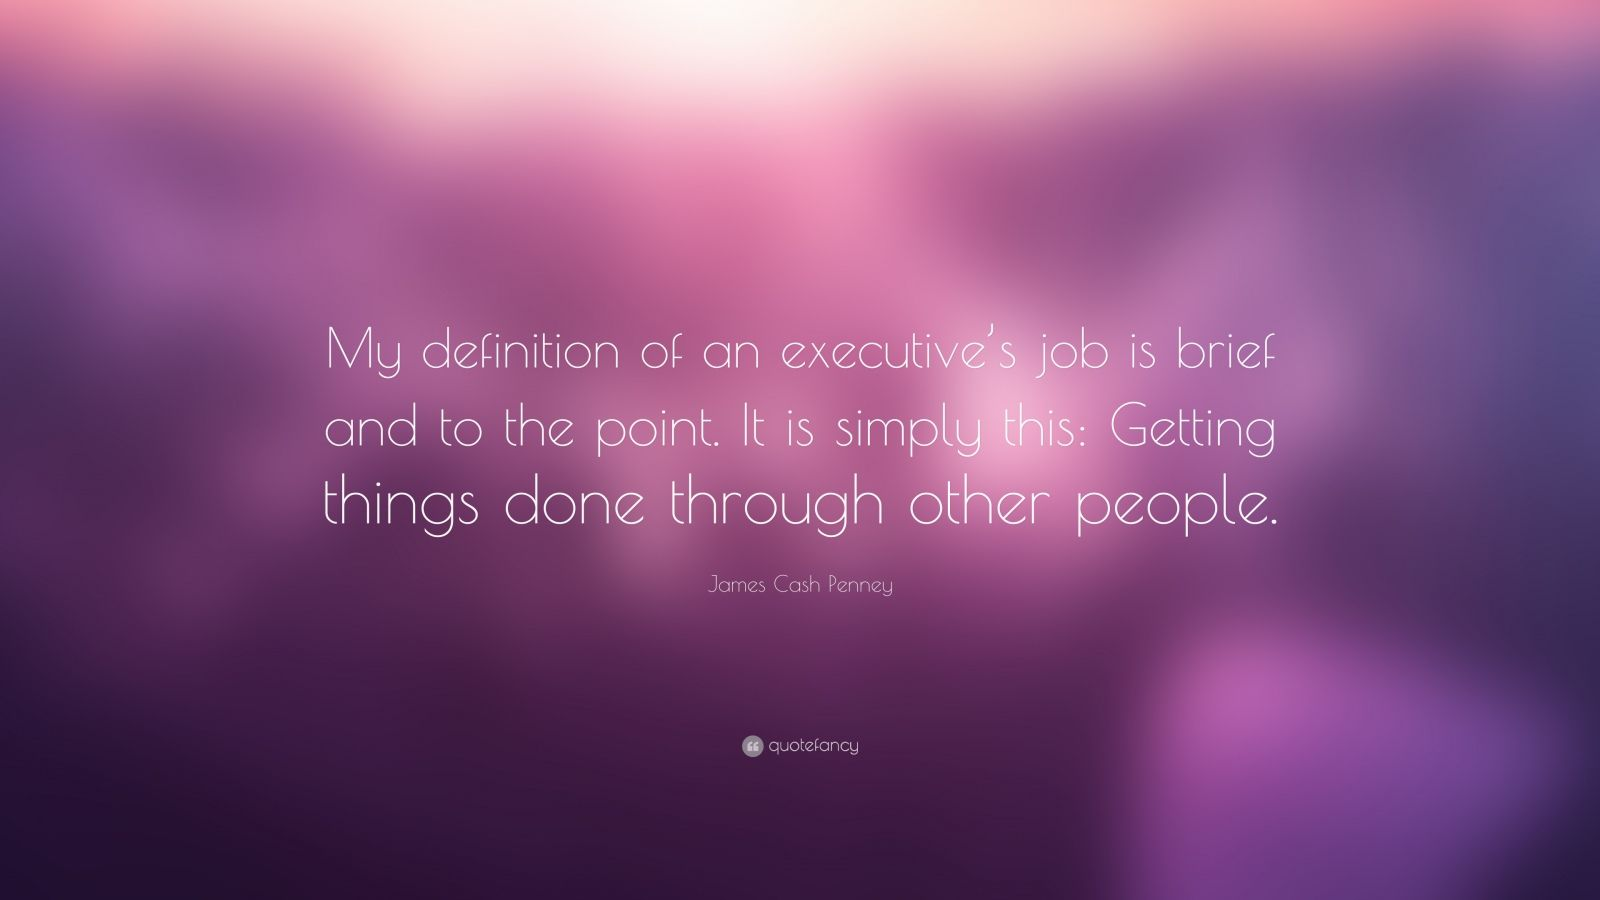 """James Cash Penney Quote: """"My definition of an executive's job is brief and to the point. It is simply this: Getting things done through other people."""""""